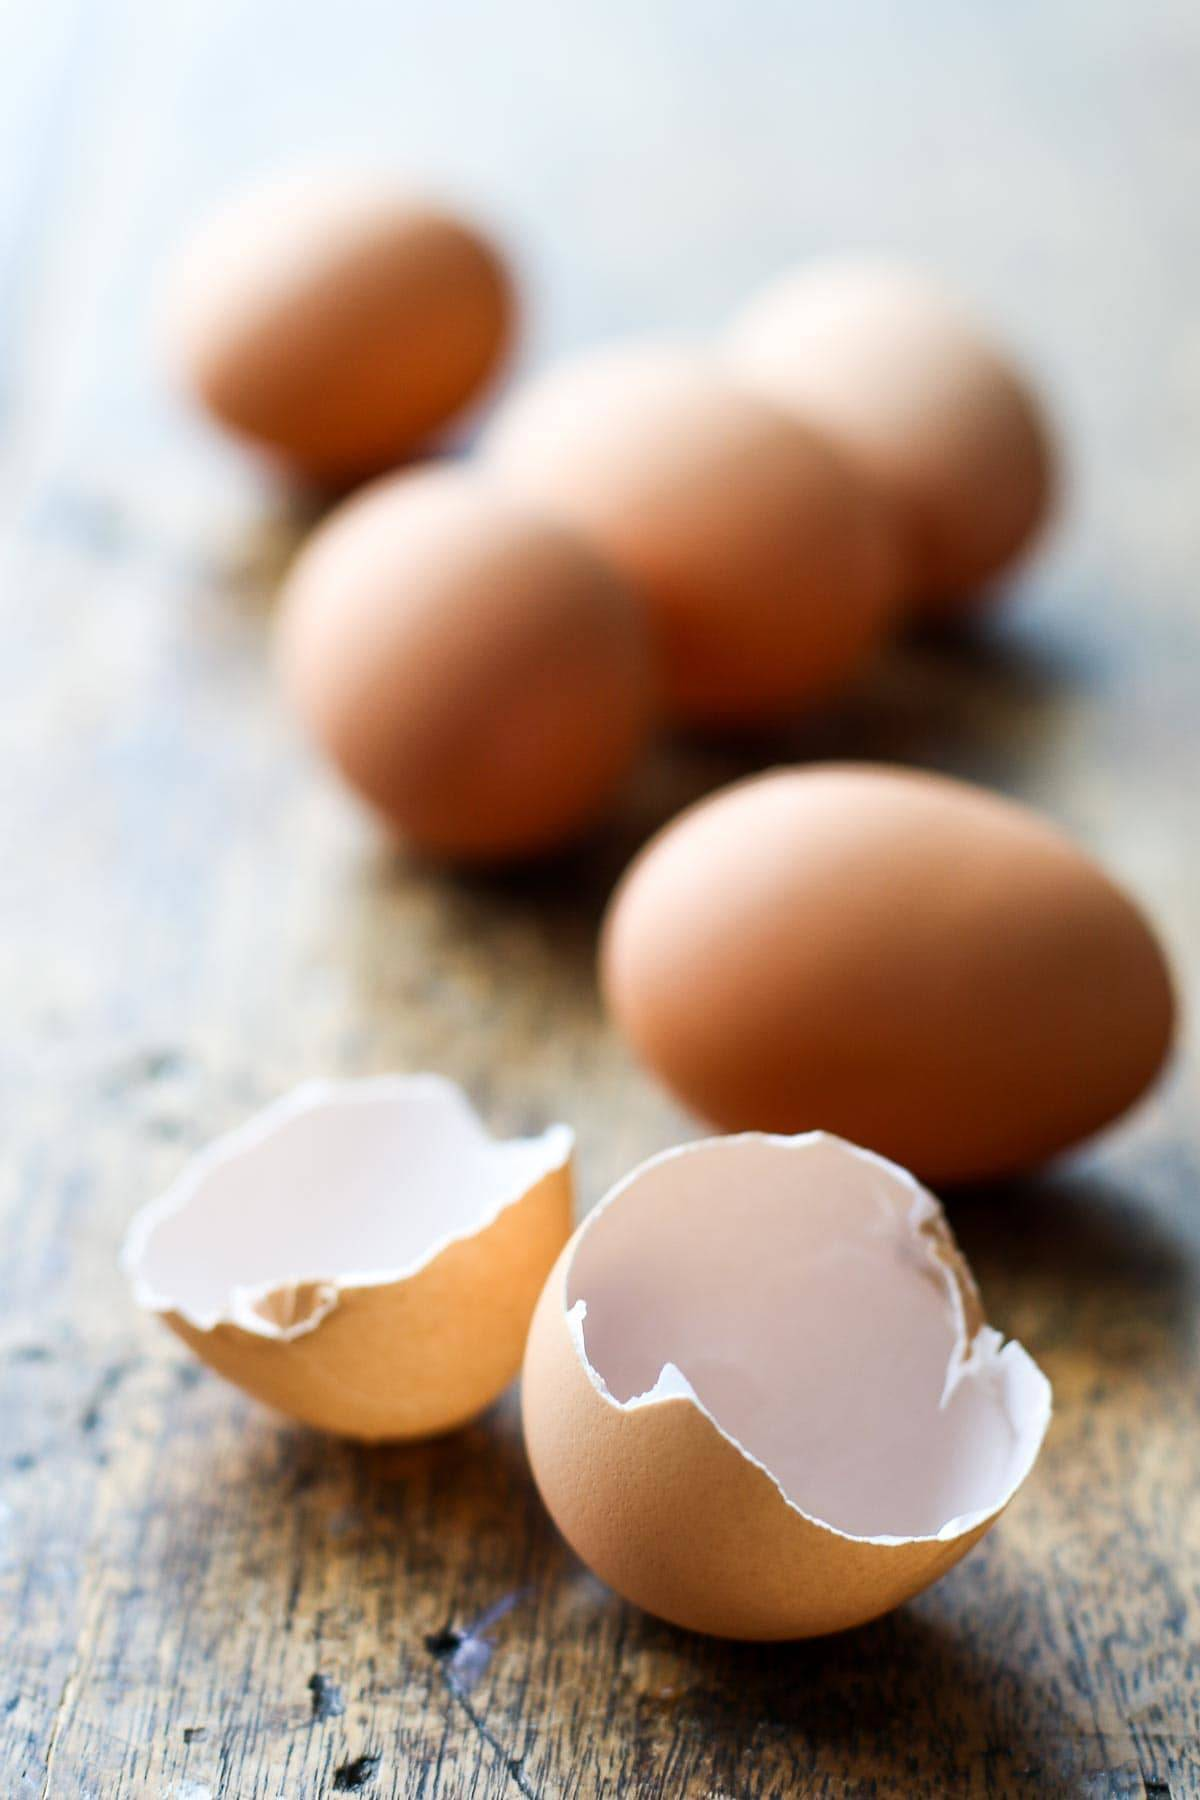 Eggs and egg shells.